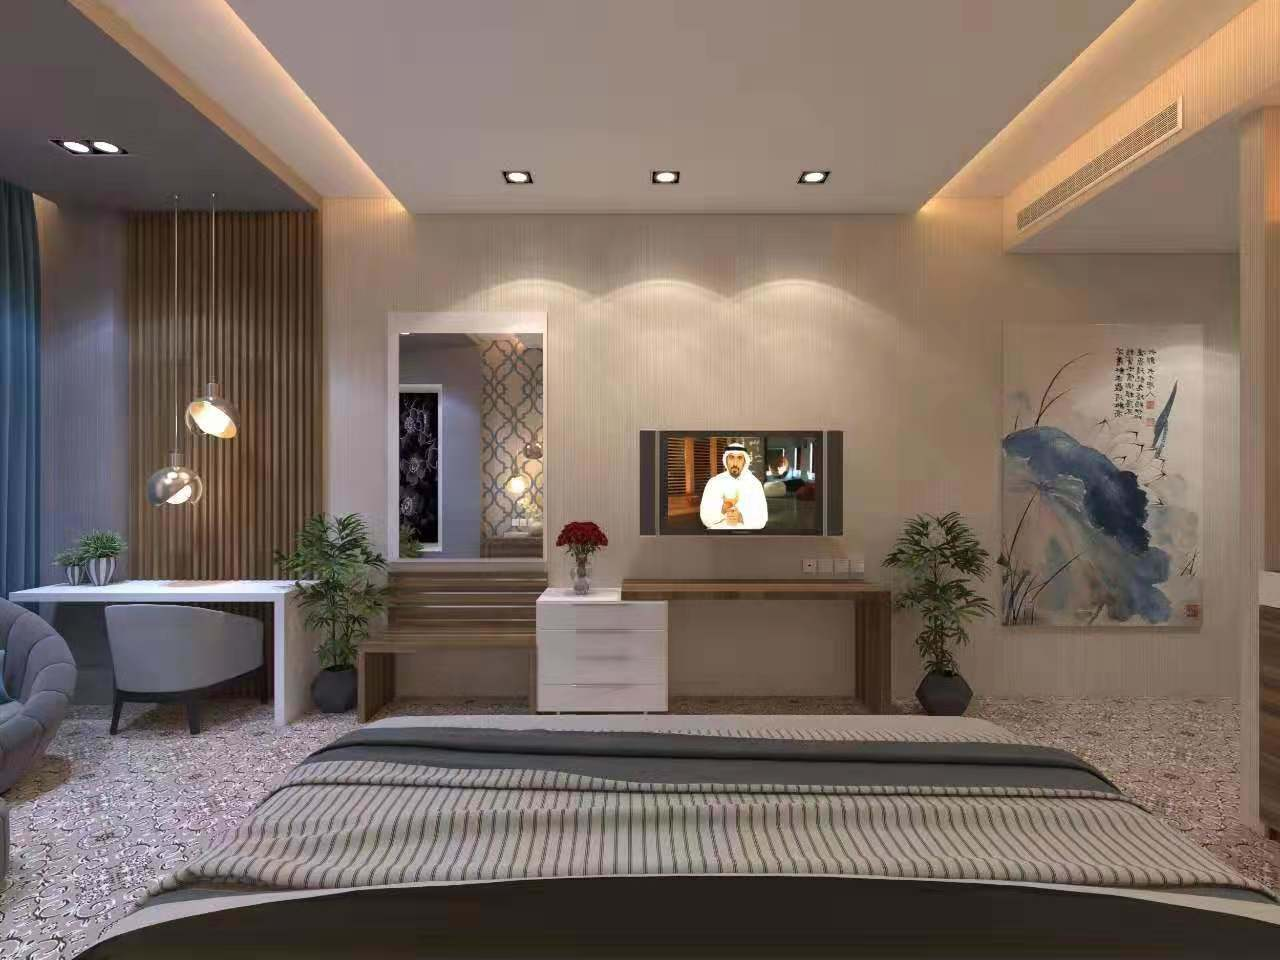 China Custom Made 5 Star Luxury Modern Wooden Hospitality Hotel Room Interior Bedroom Furniture Photos Pictures Made In China Com